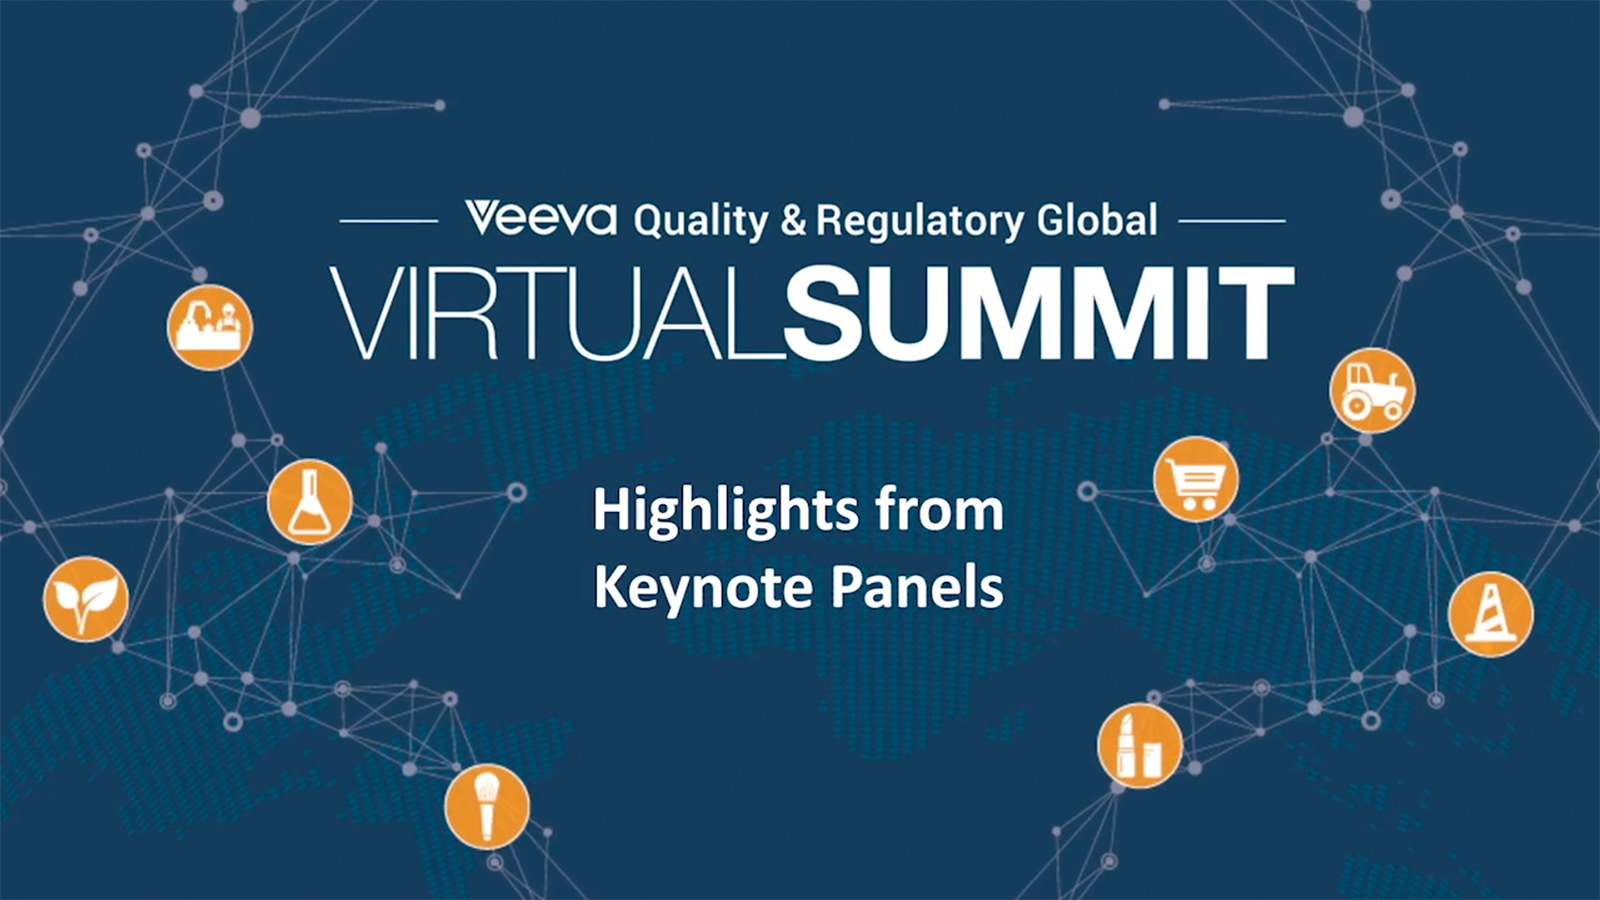 2020 Veeva Quality & Regulatory Virtual Summit - Highlights from Keynote Panels